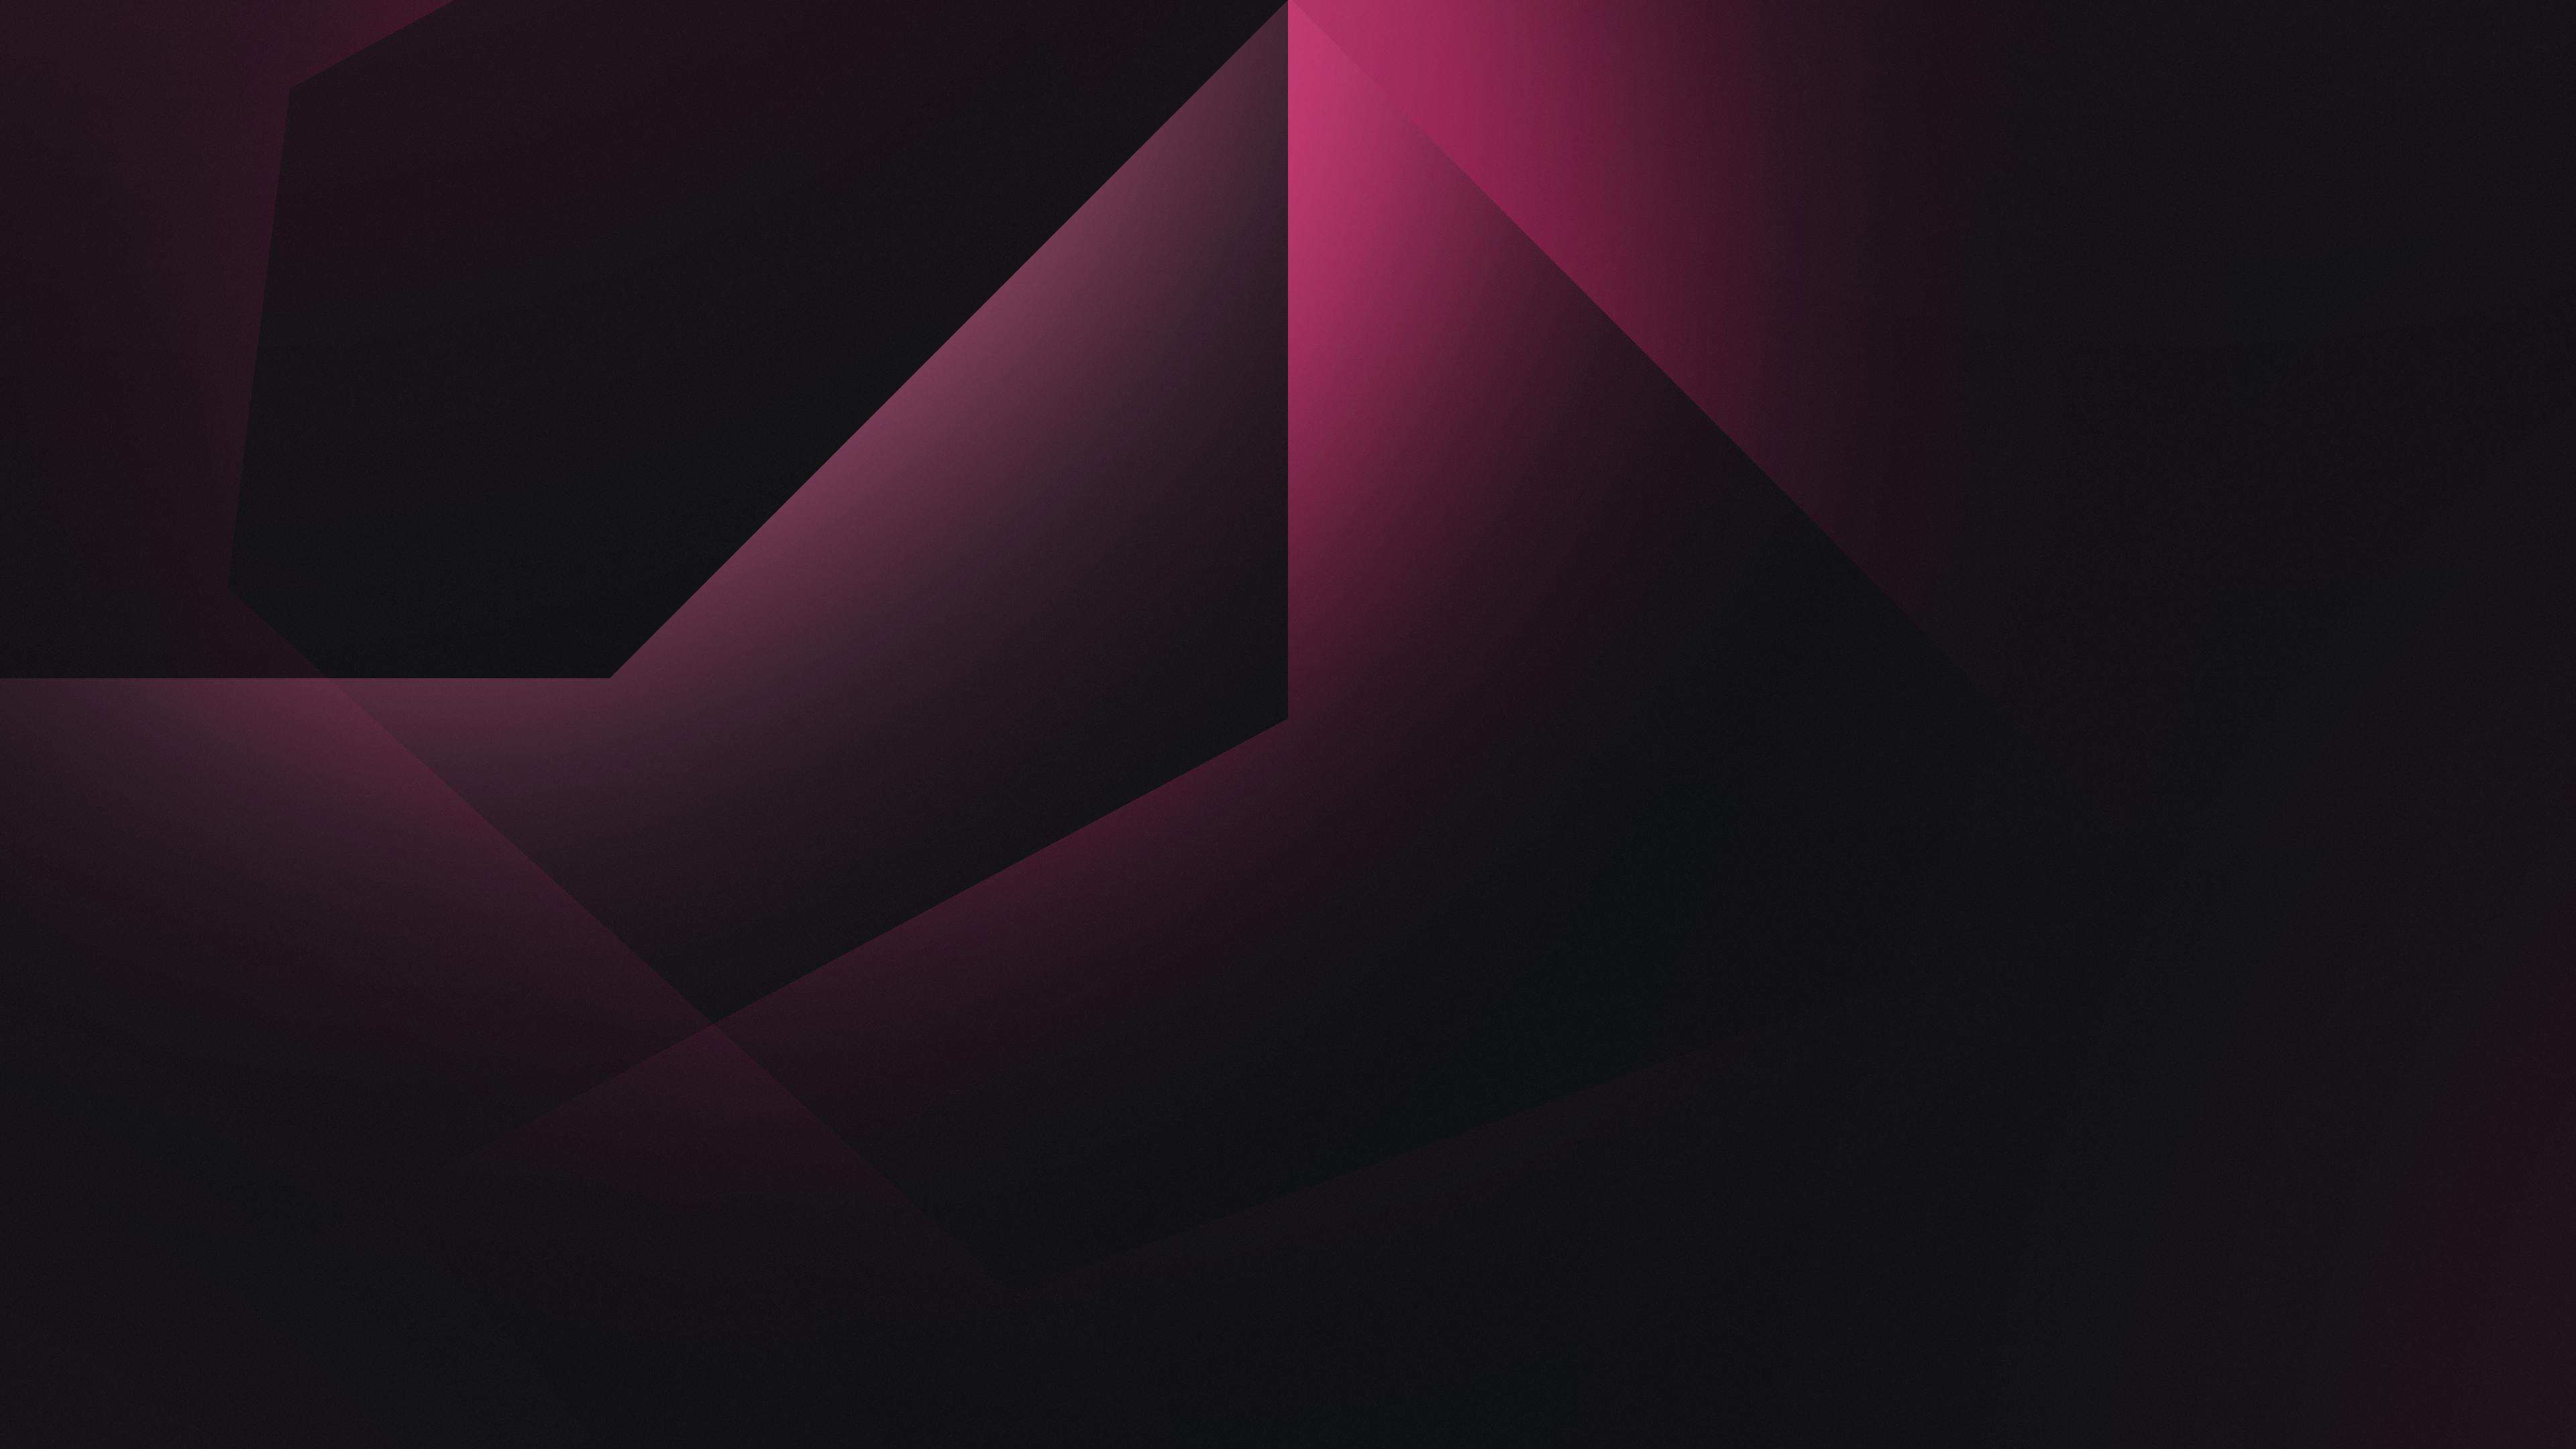 1366x768 Abstract Dark Red 4k 1366x768 Resolution Hd 4k Wallpapers